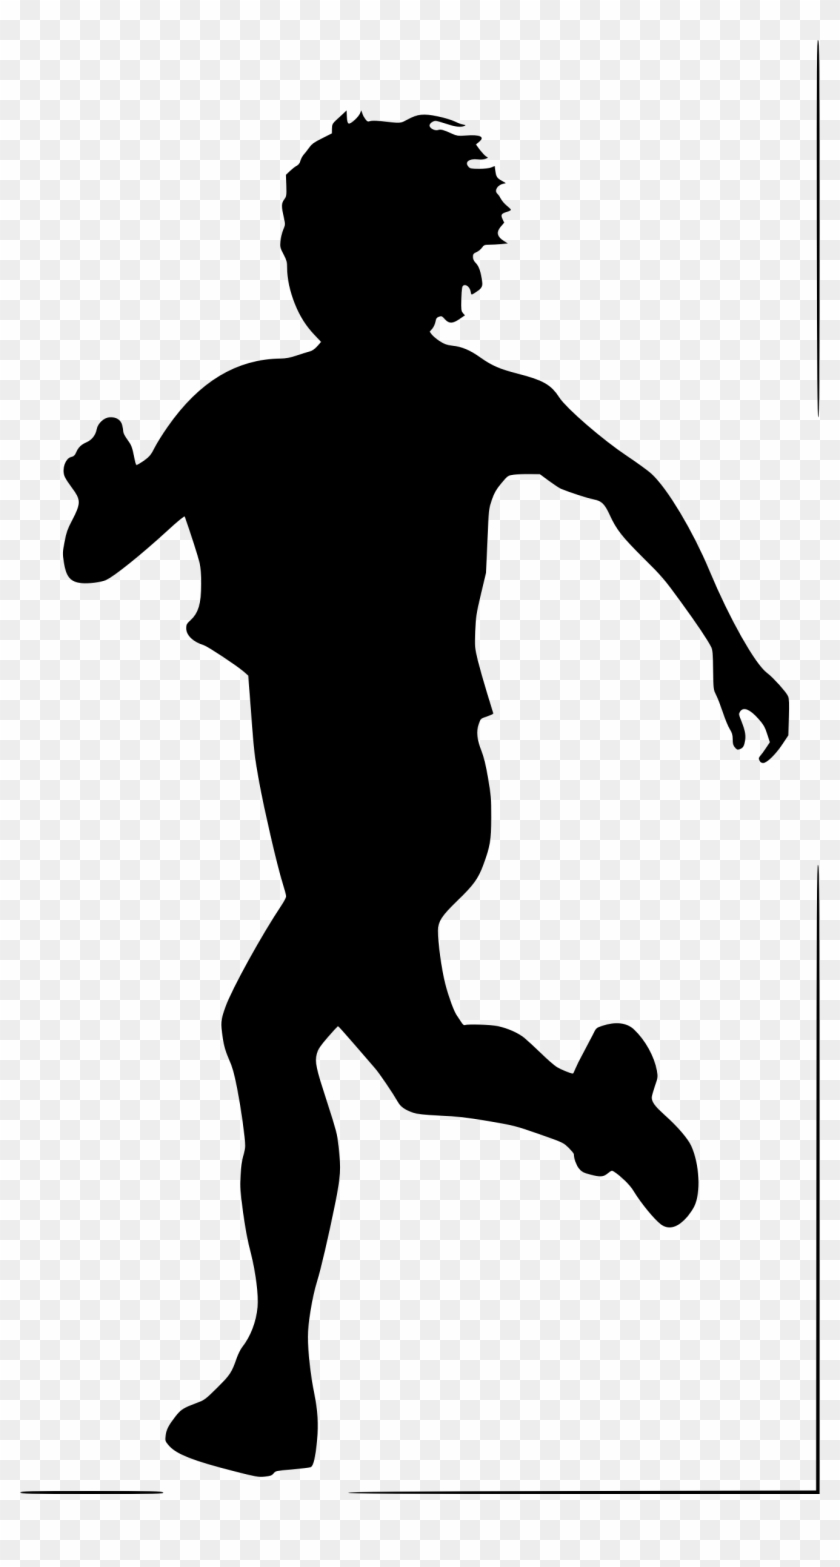 Silhouette People Running At Getdrawings - Boy Running Silhouette #499422